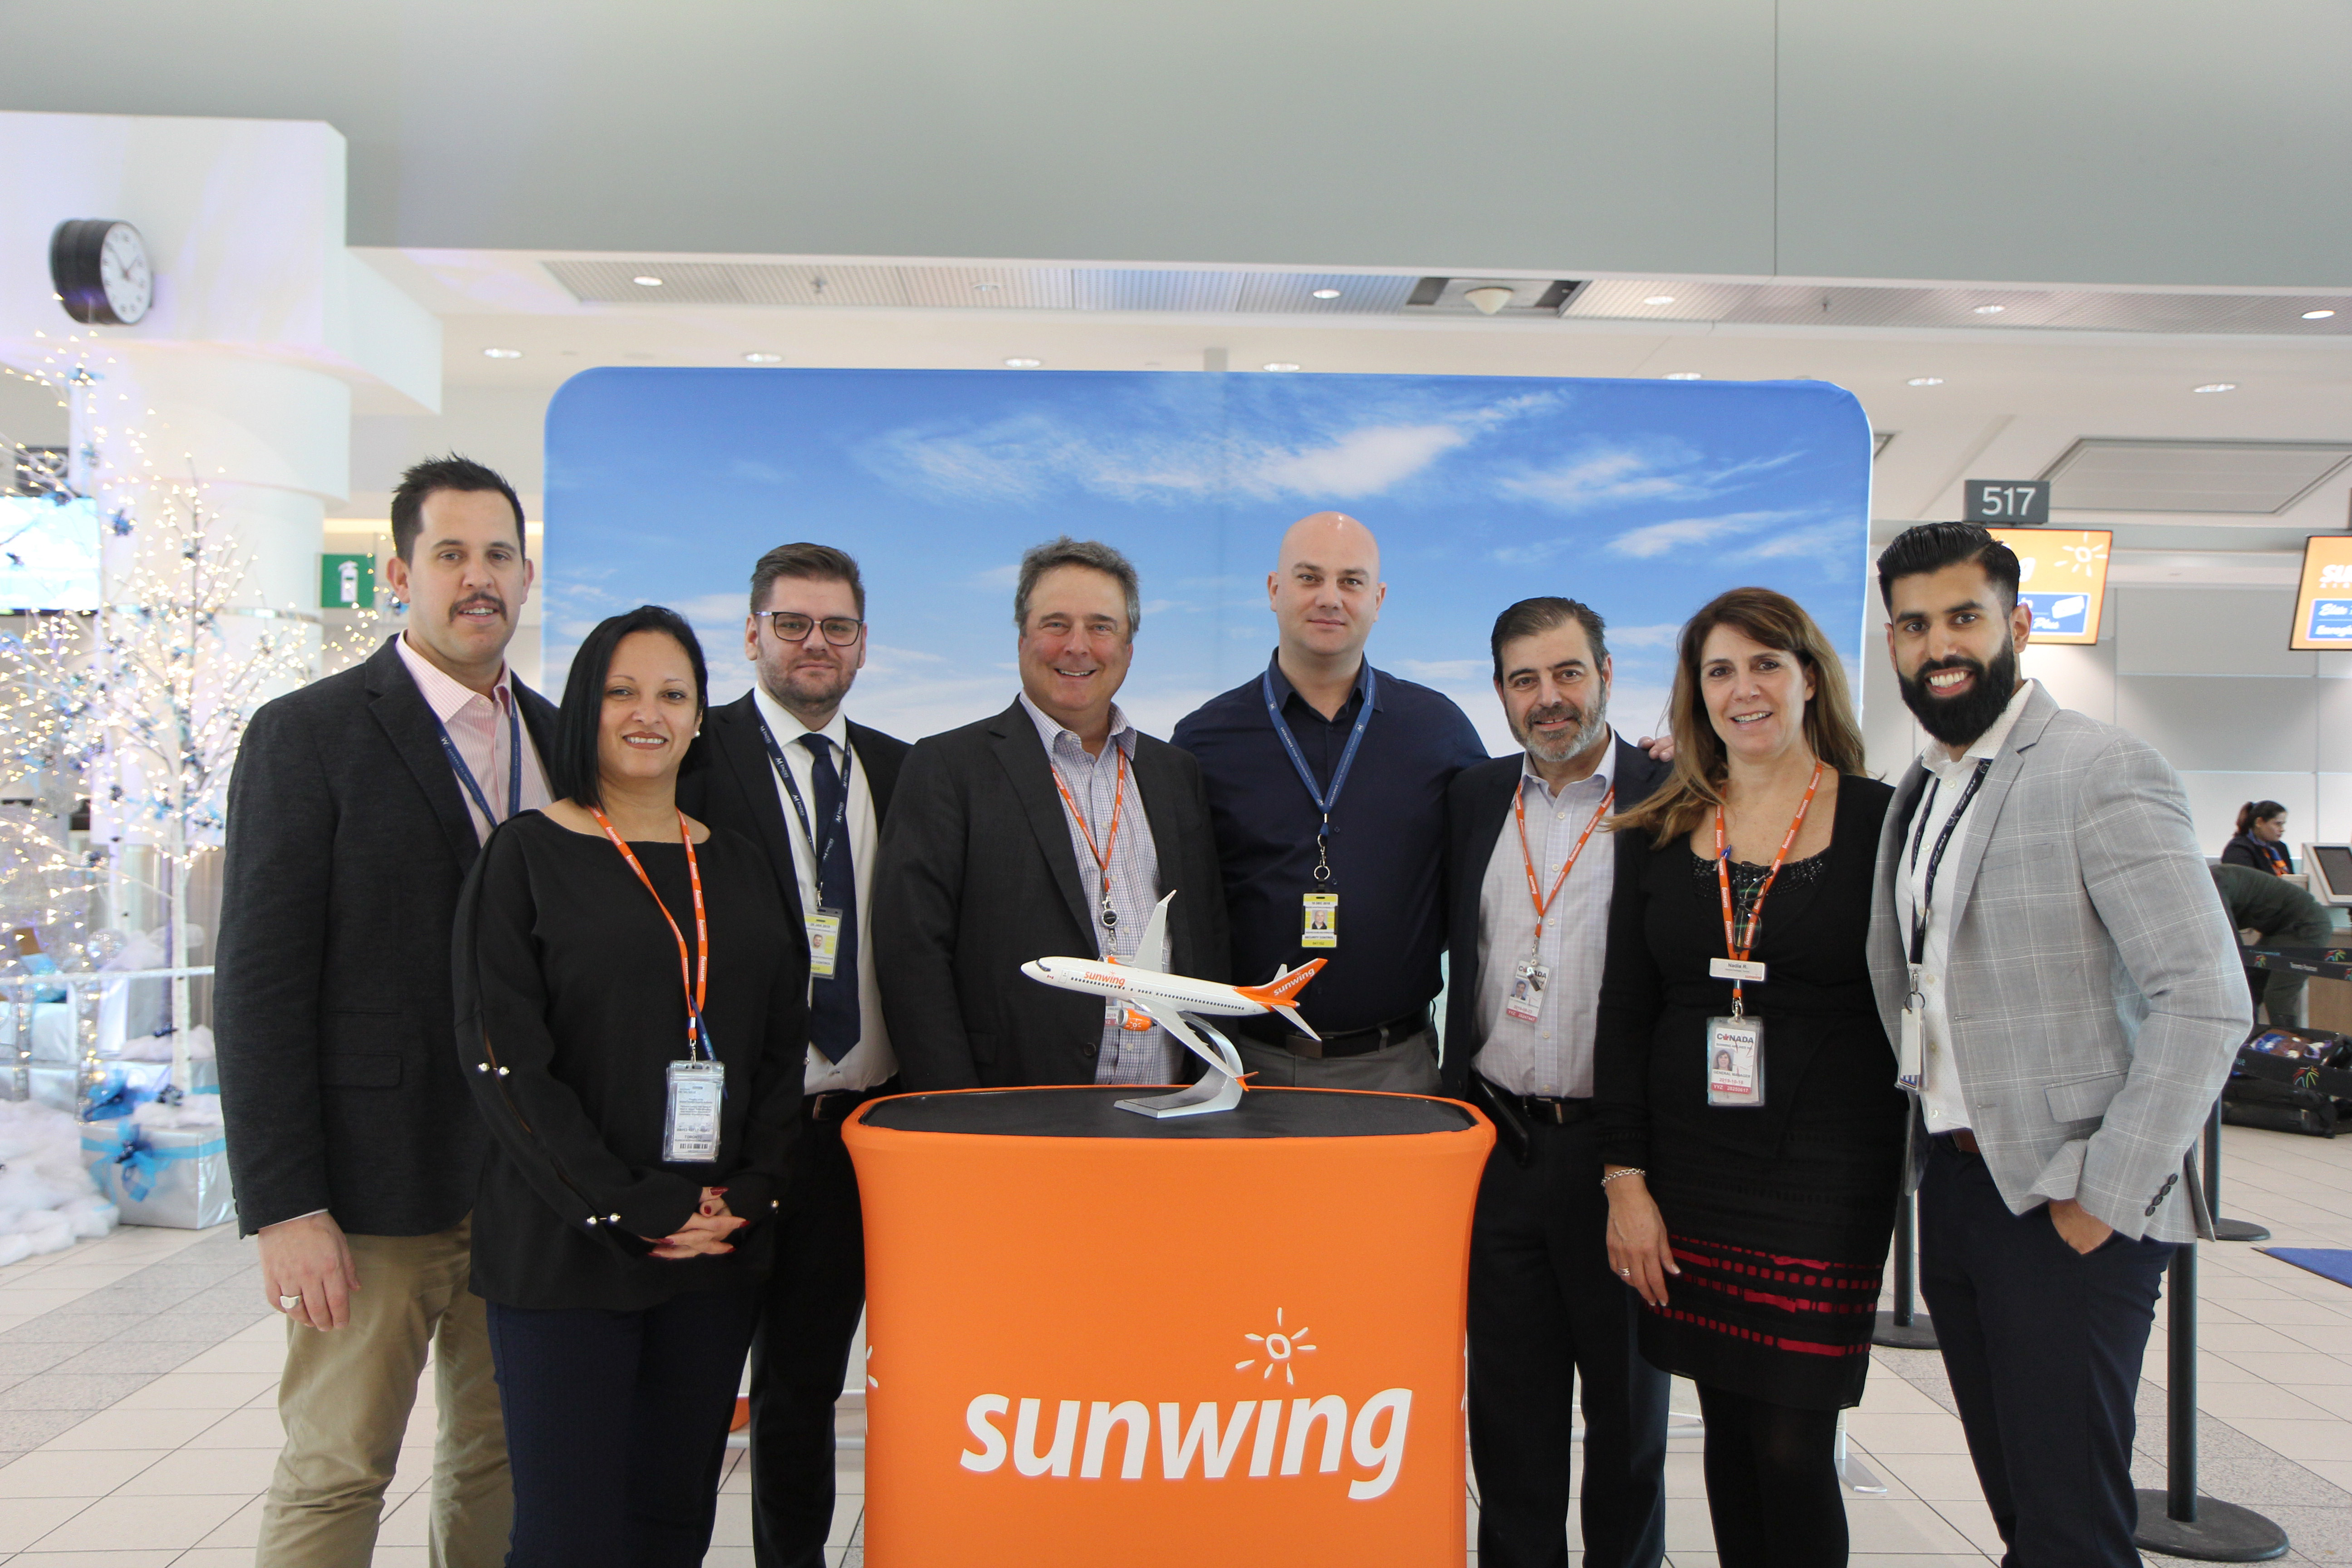 Sunwing et Menzies Aviation